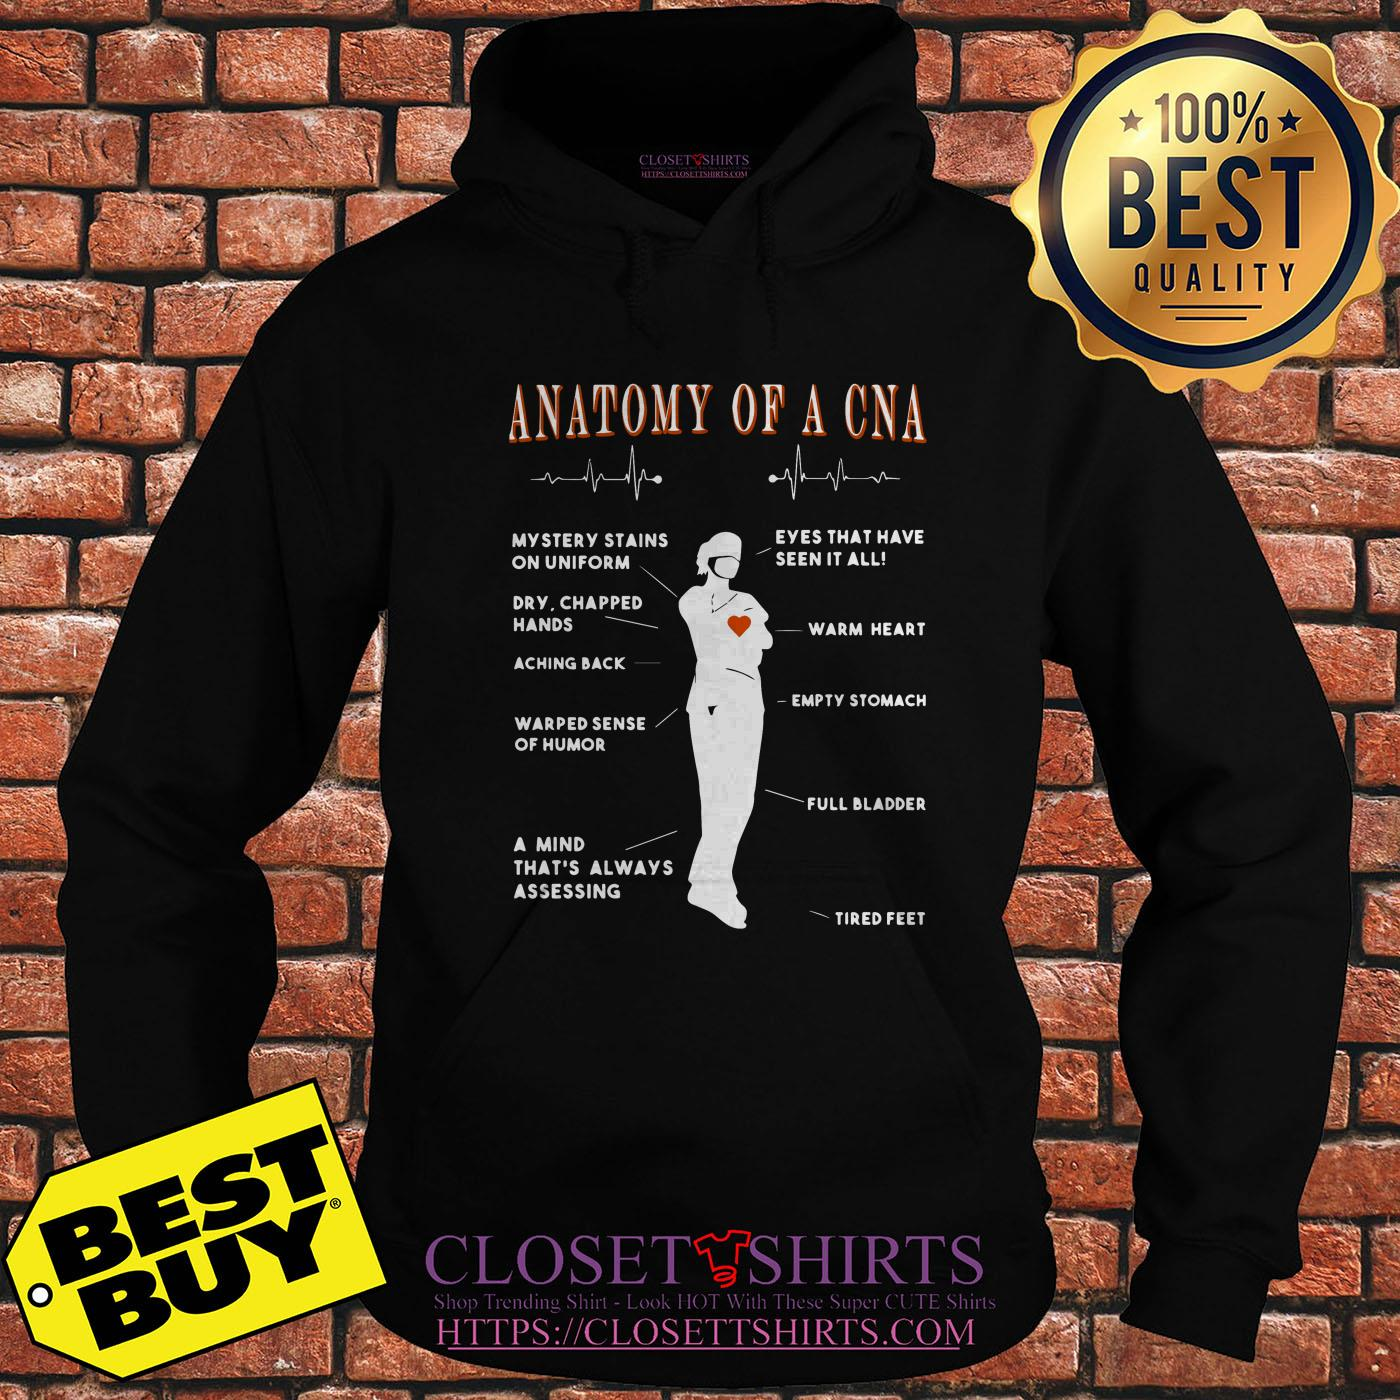 Anatomy Of A Cna Mystery Stains On Uniform Eyes That Have Seen It All Dry hoodie